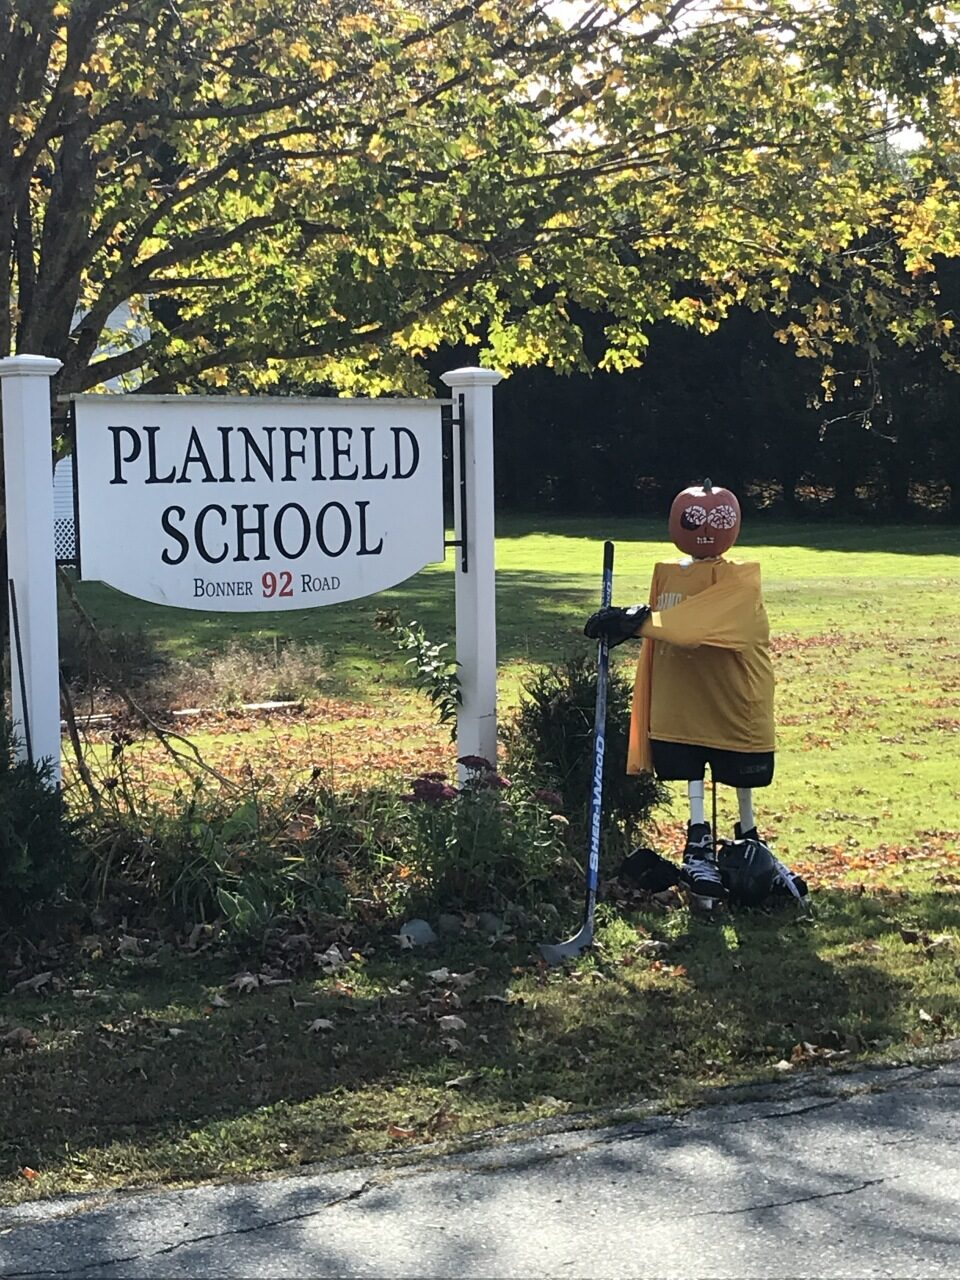 Plainfield School ROCKS! at 92 Bonner Rd